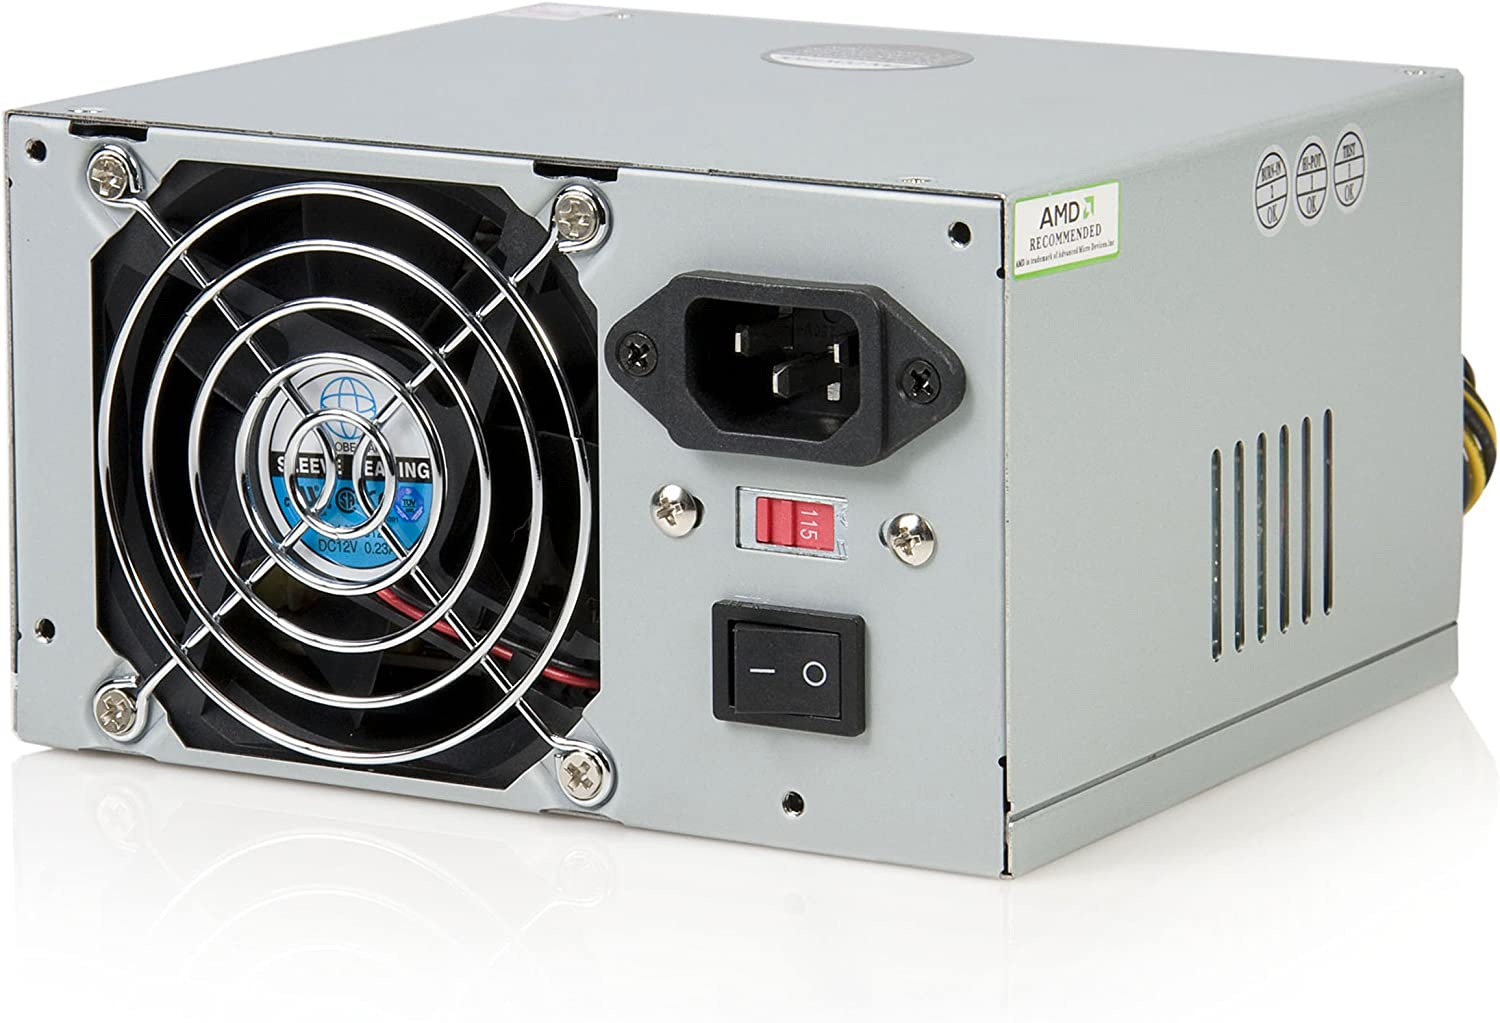 StarTech.com 350 Watt ATX12V 2.01 Computer PC Power Supply w/ 20 & 24 Pin Connector (ATX2POWER350)